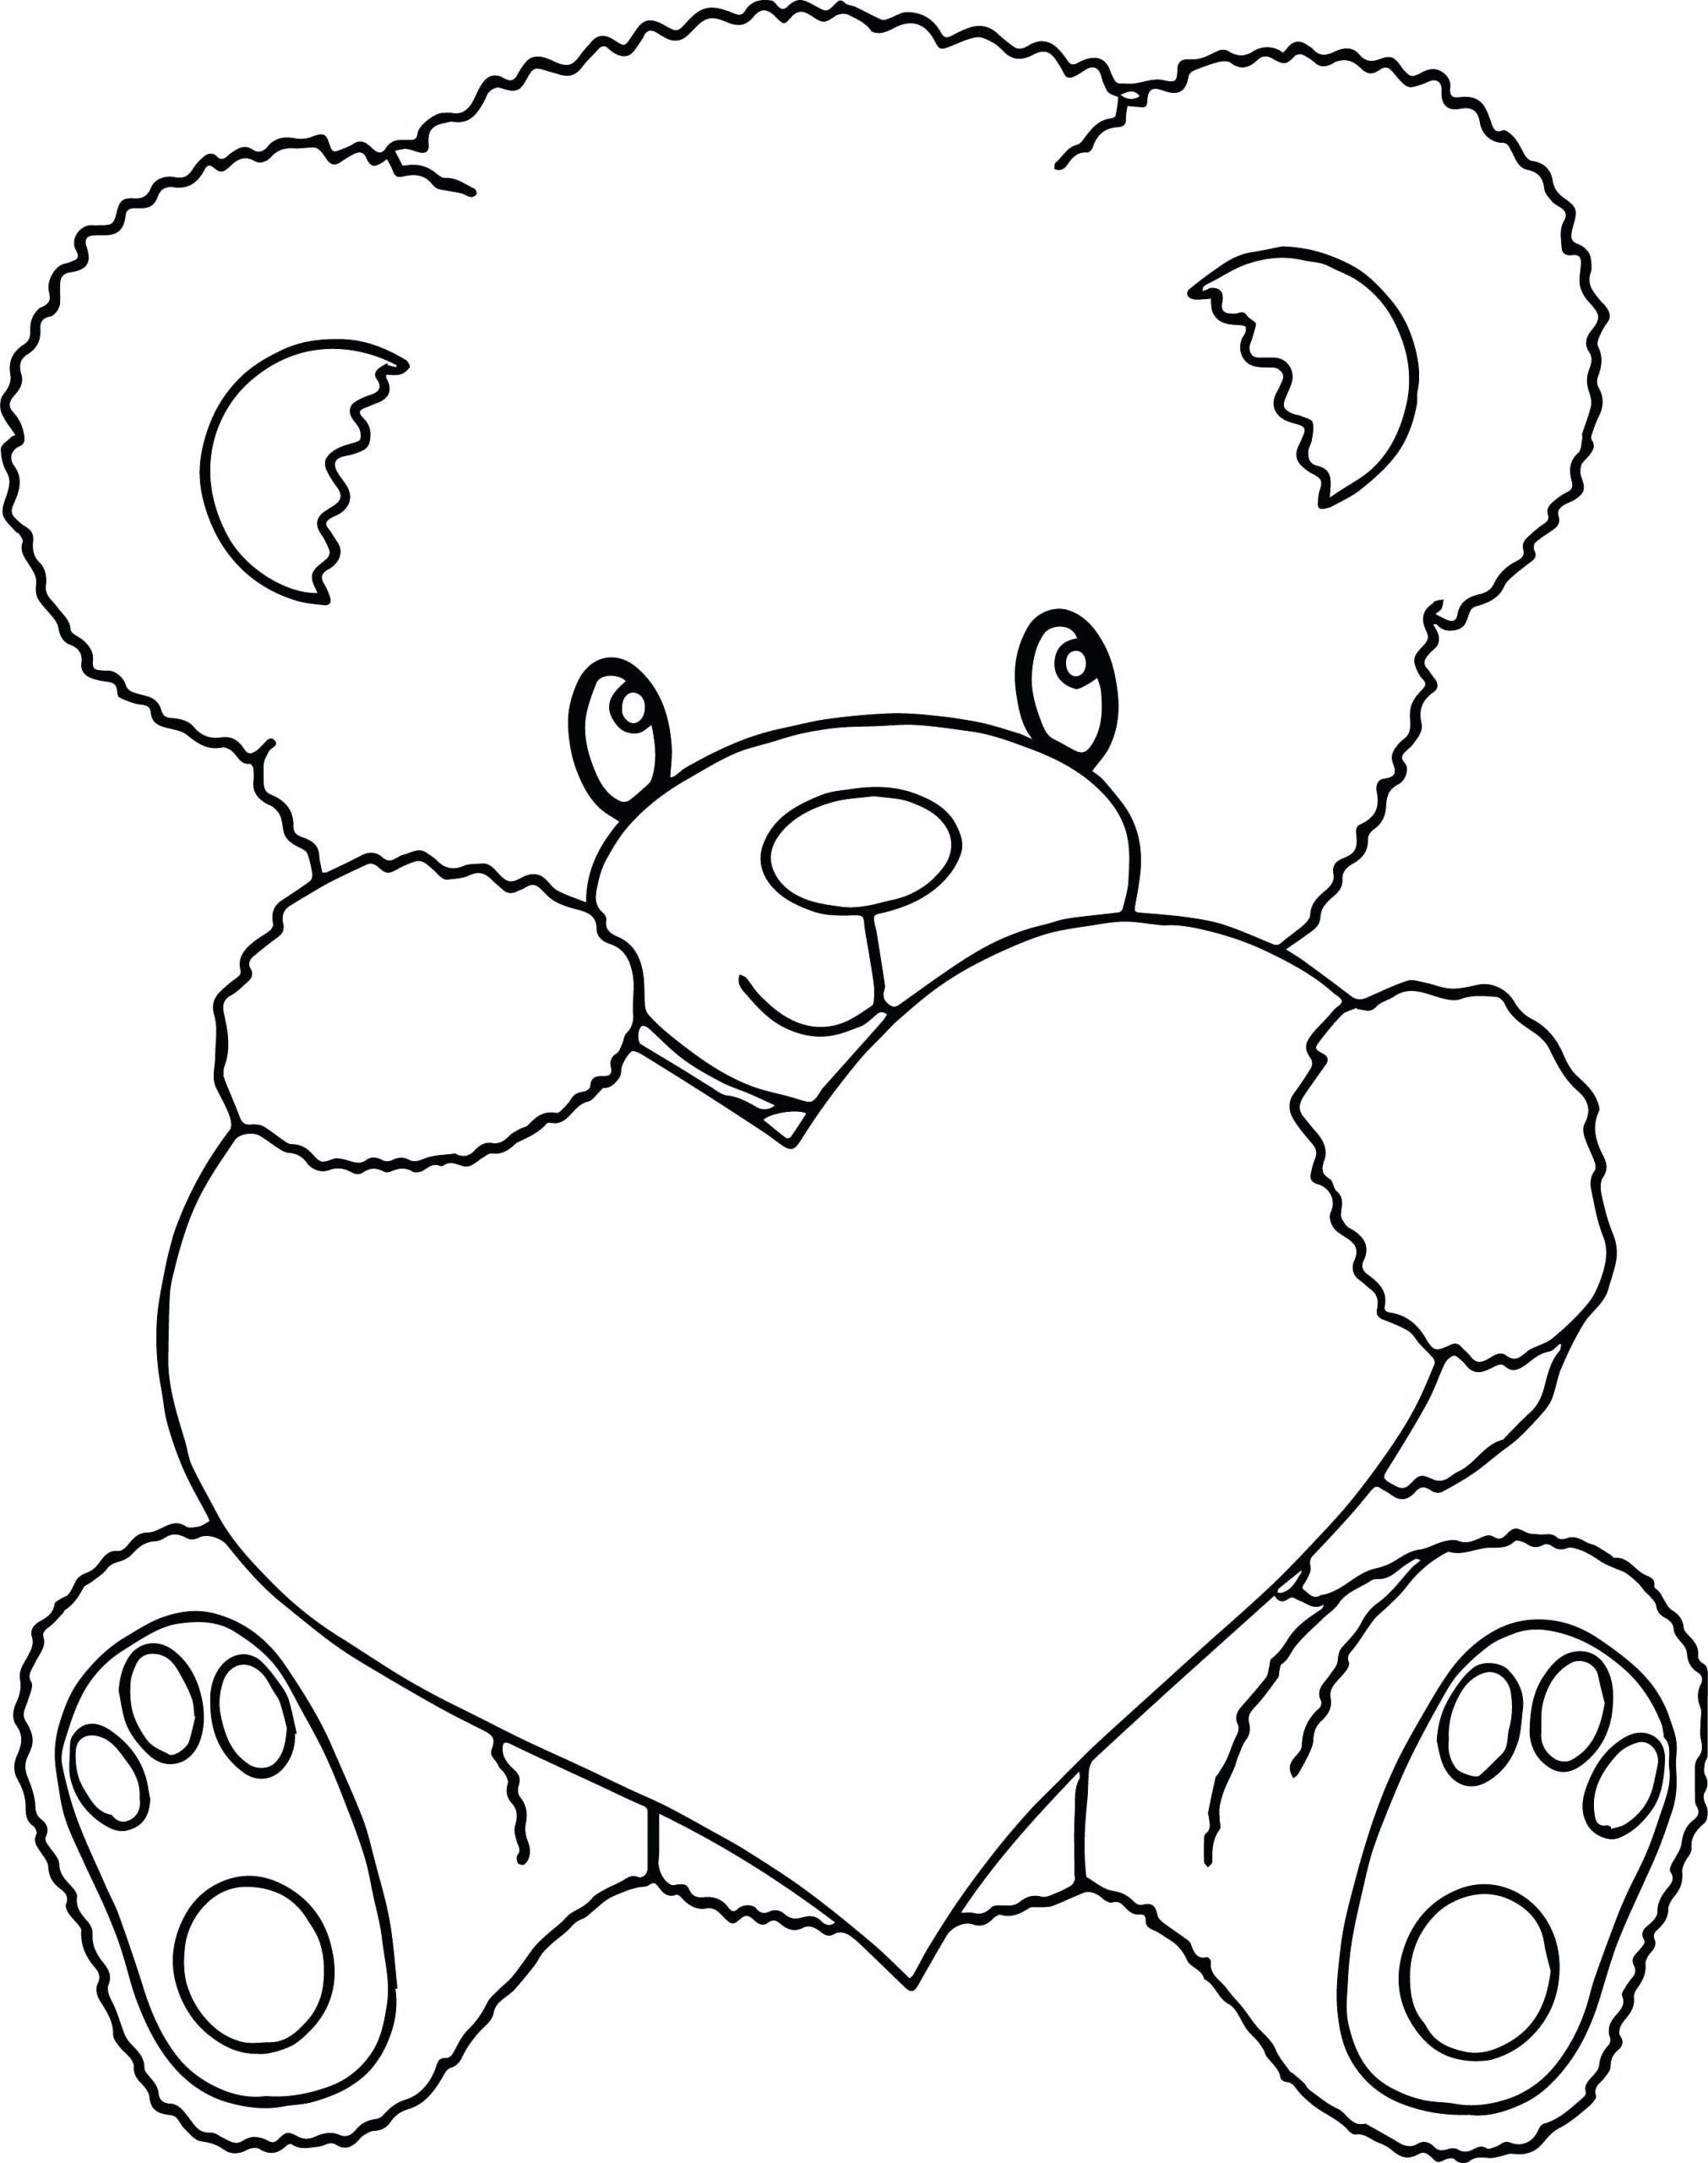 Heart Coloring Worksheet Coloring Pages Coloring